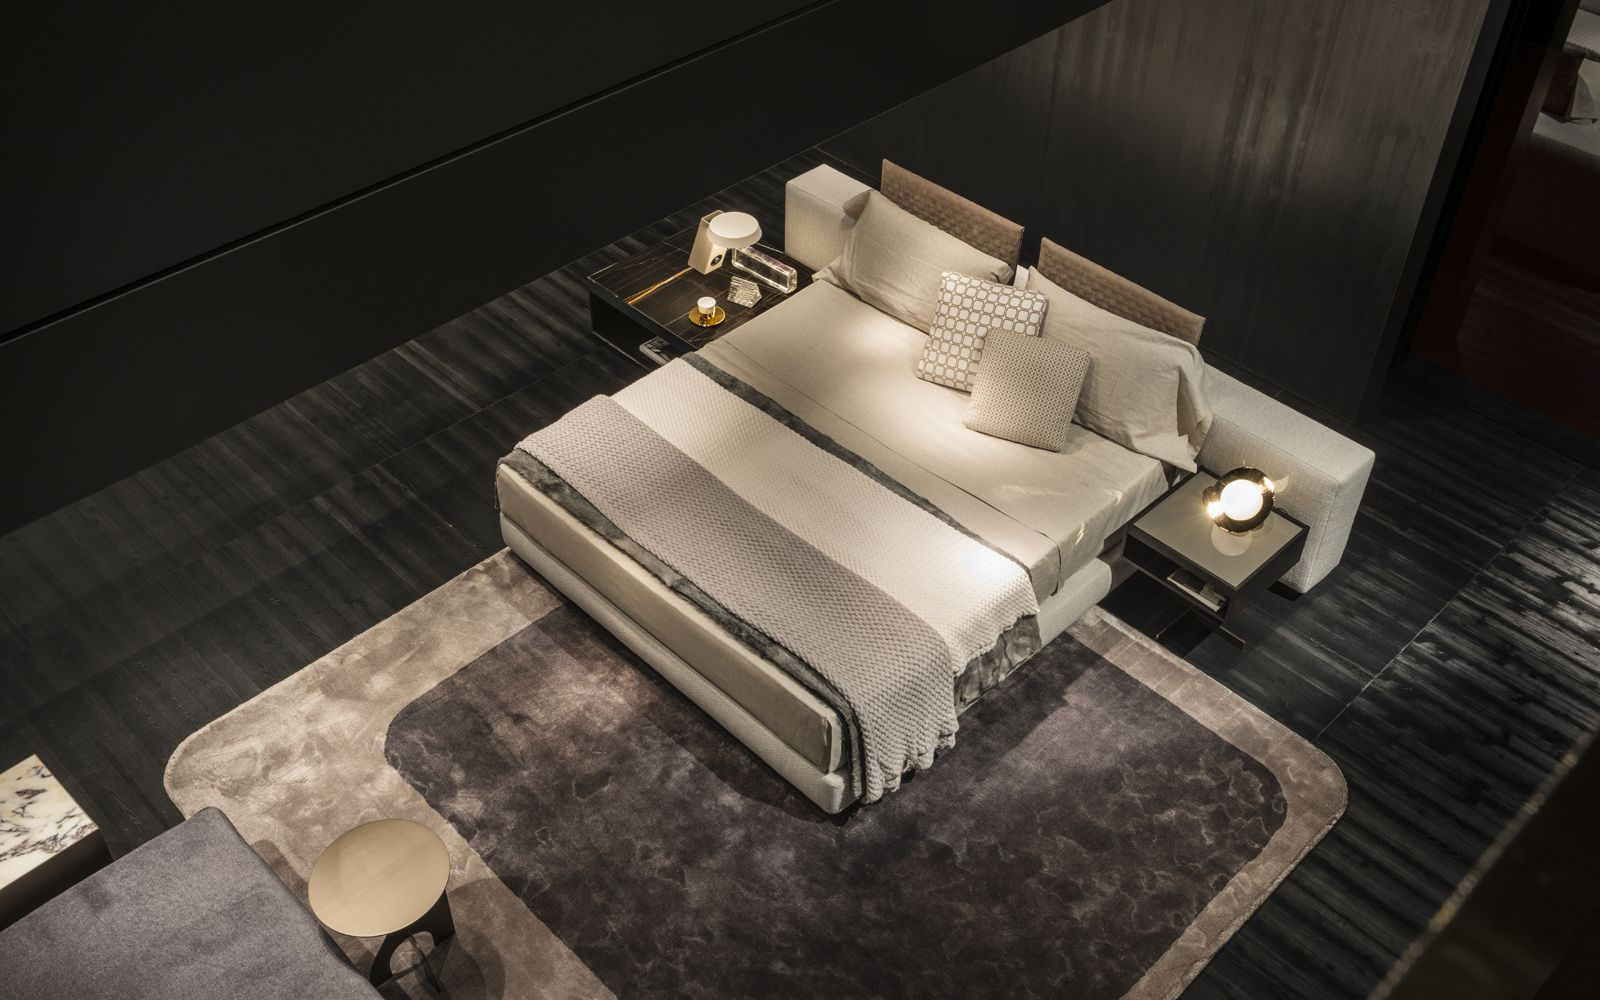 Yang offset bed on dibbets cambr rug rodolfo dordoni for Interni case lussuose